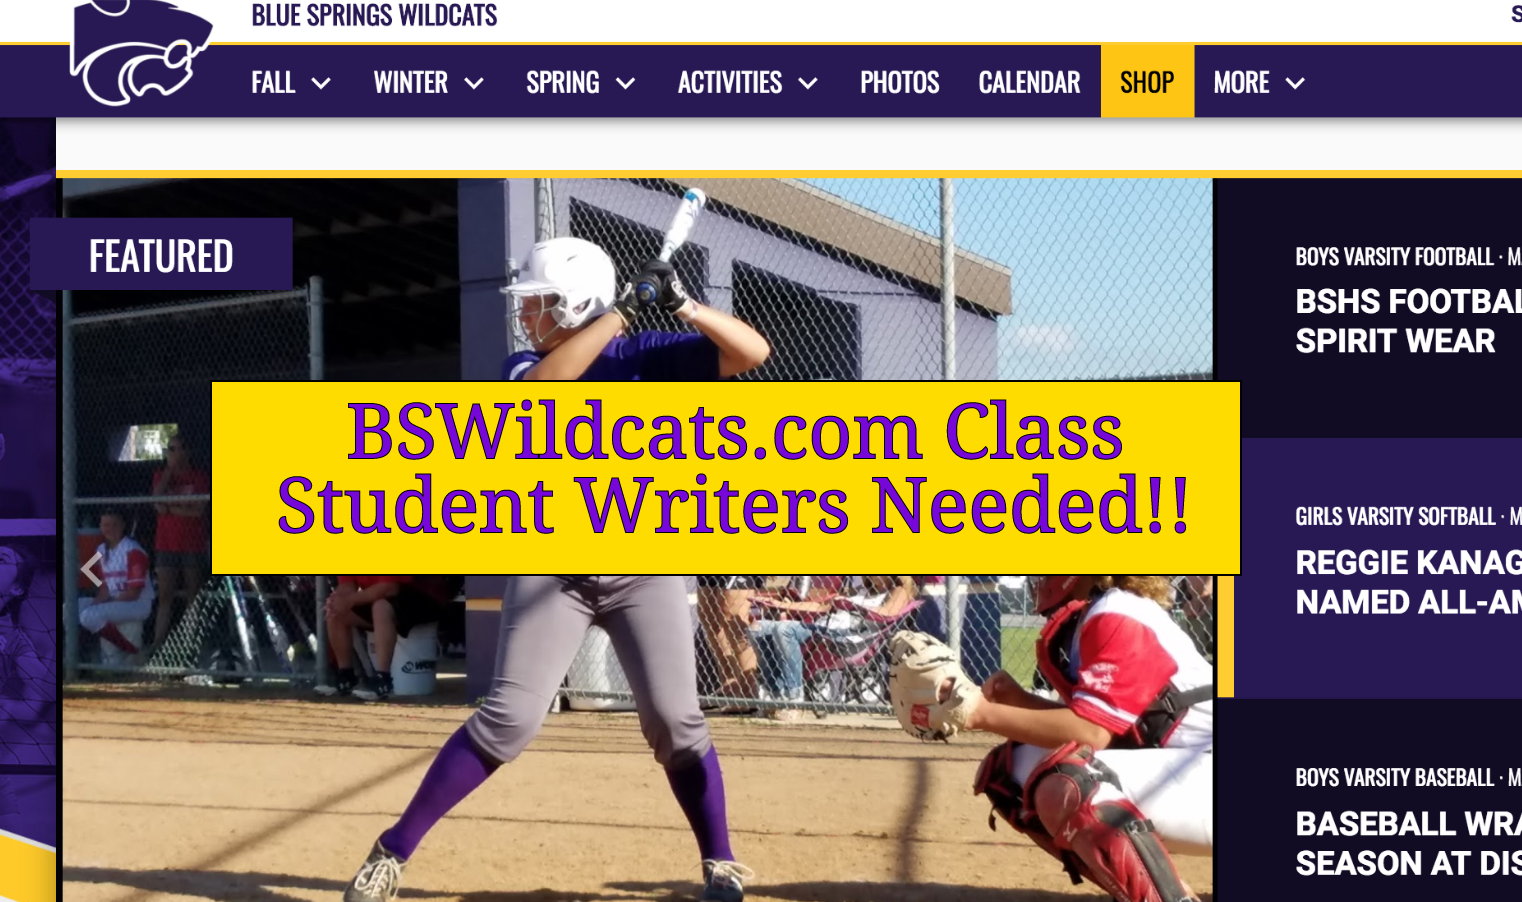 BSWILDCATS.COM CLASS LOOKING FOR STUDENTS FOR 2018-19